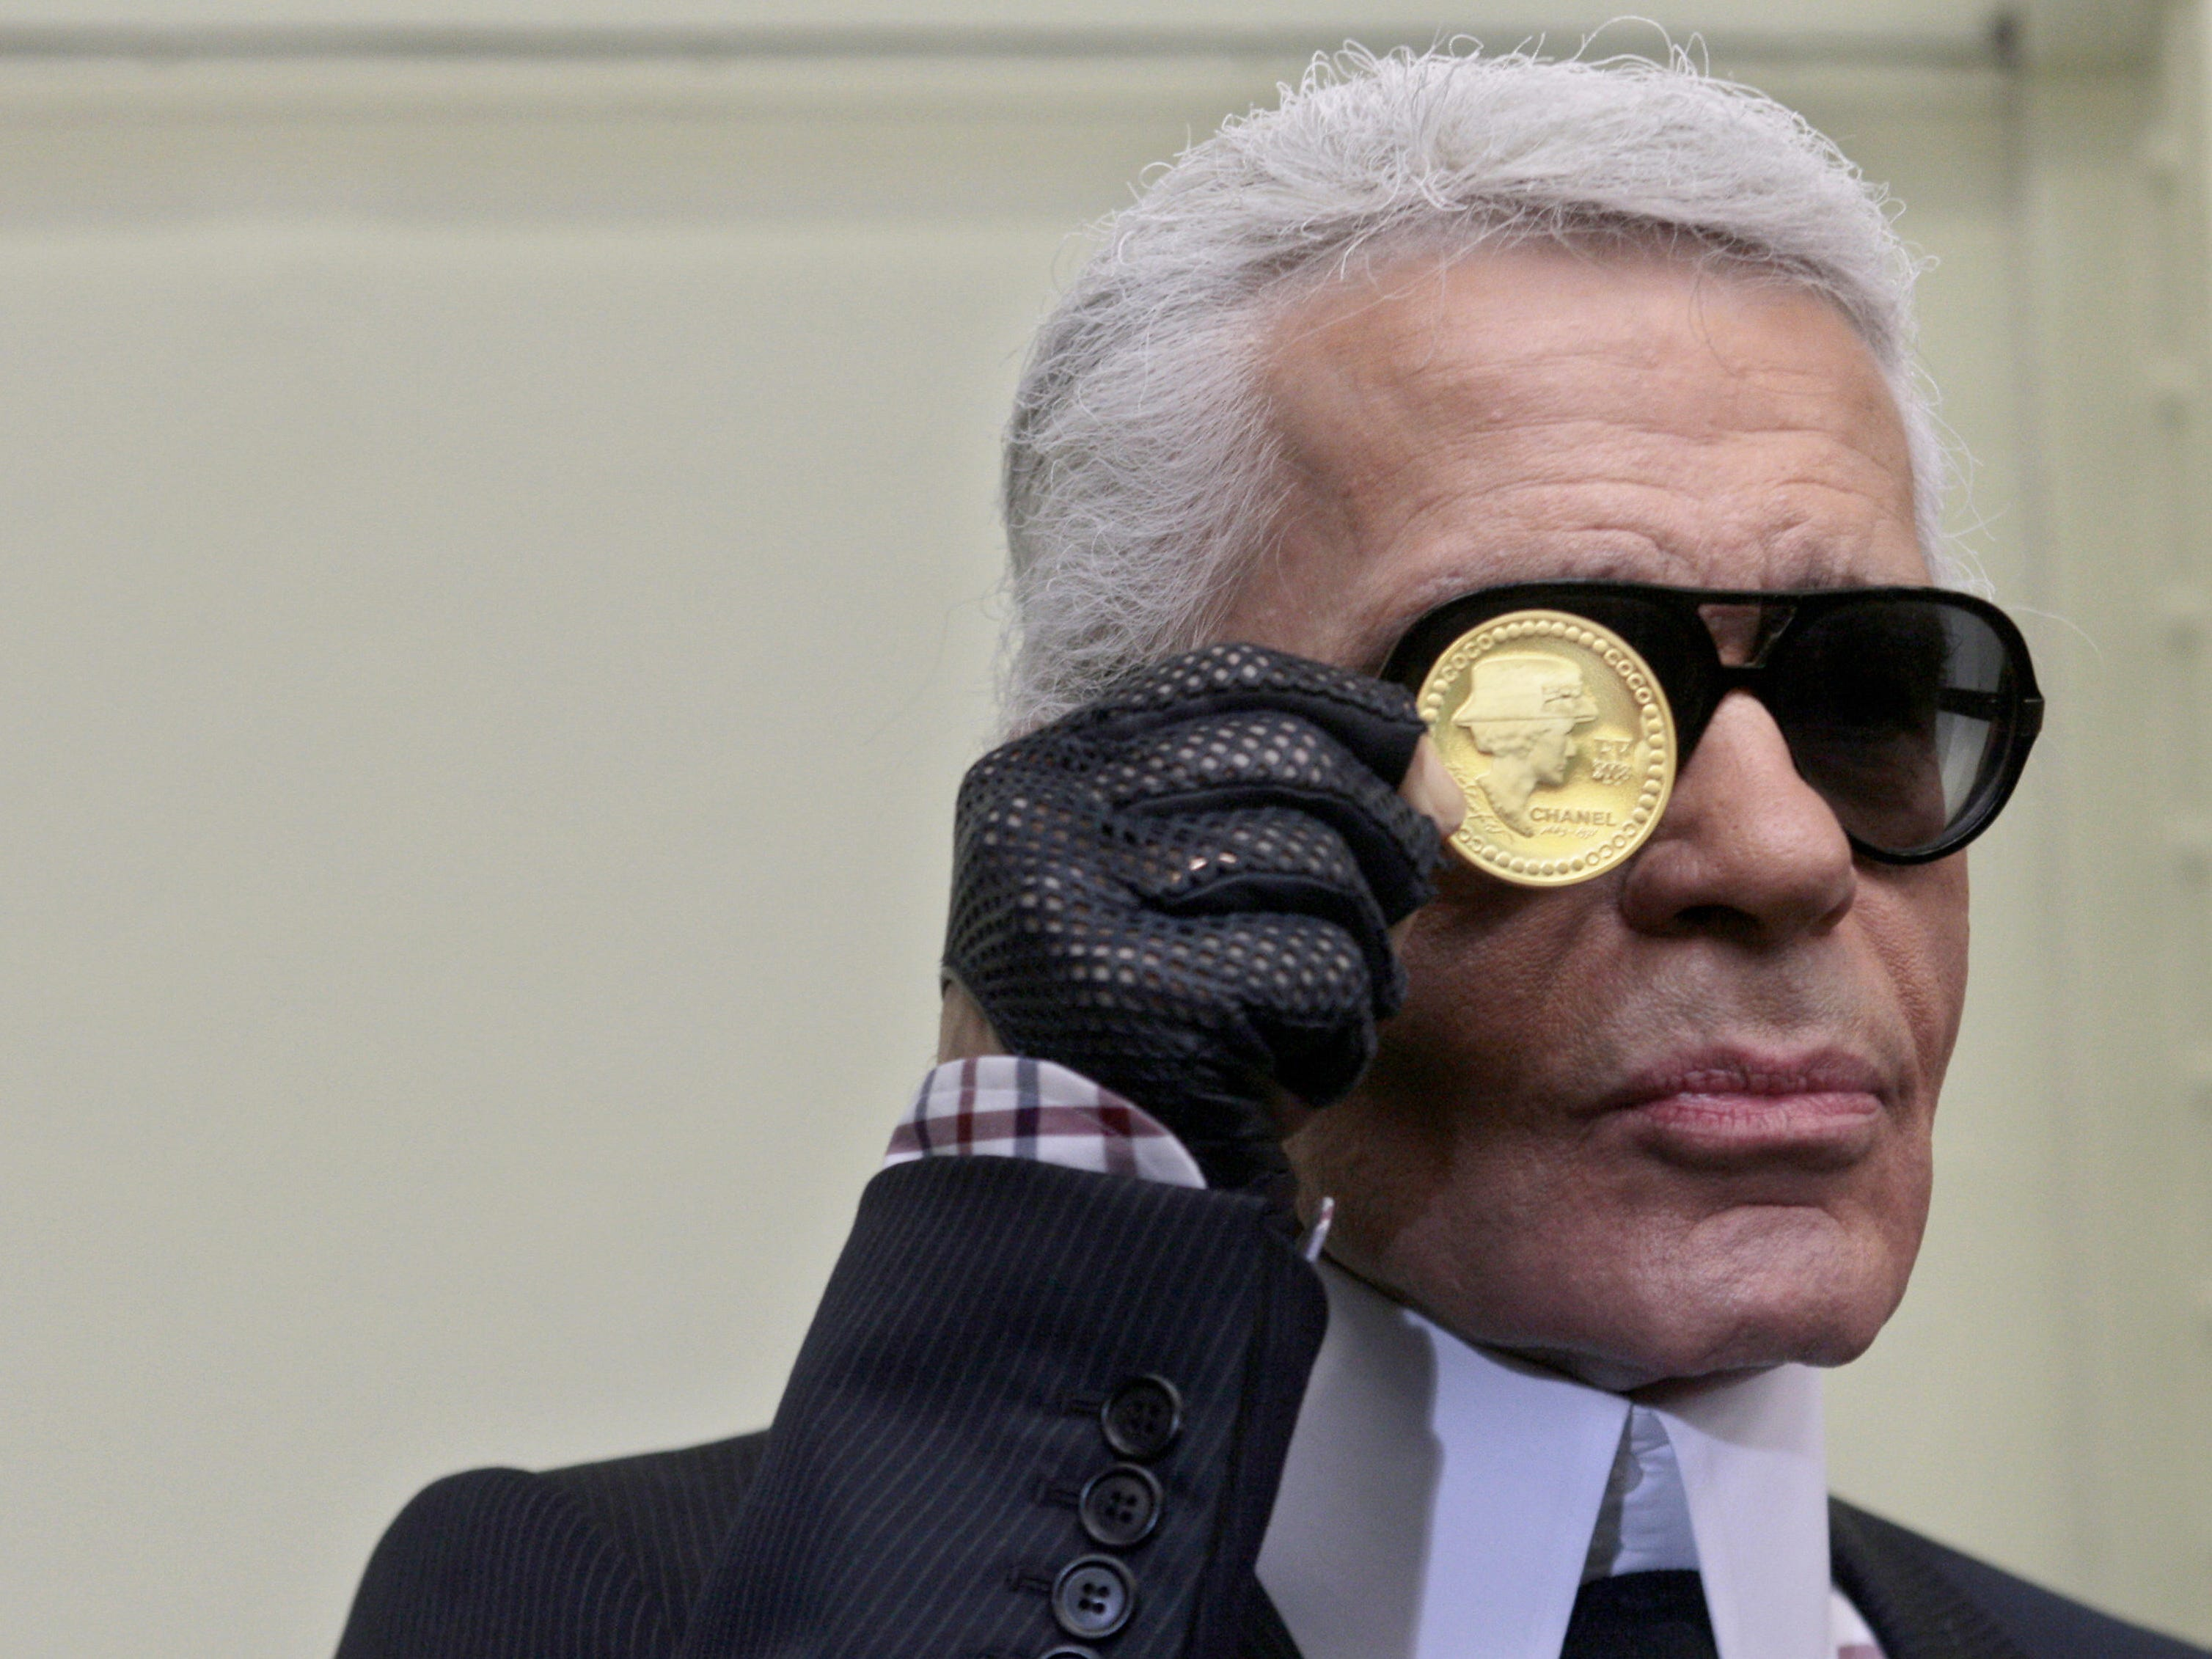 """Karl Lagerfeld presents a gold coin worth 5,900 euros (7,440 US dollars), representing French legend designer Gabrielle """"Coco"""" Chanel (1883-1971) on Nov. 19, 2008 at Paris Hotel des Monnaies. French Culture Minister Christine Albanel and Karl Lagerfeld were invited by the CEO of """"Monnaie de Paris"""" (The French Mint) Christophe Beaux to present the 10,000 copies first mint collection series specially designed by Lagerfeld."""